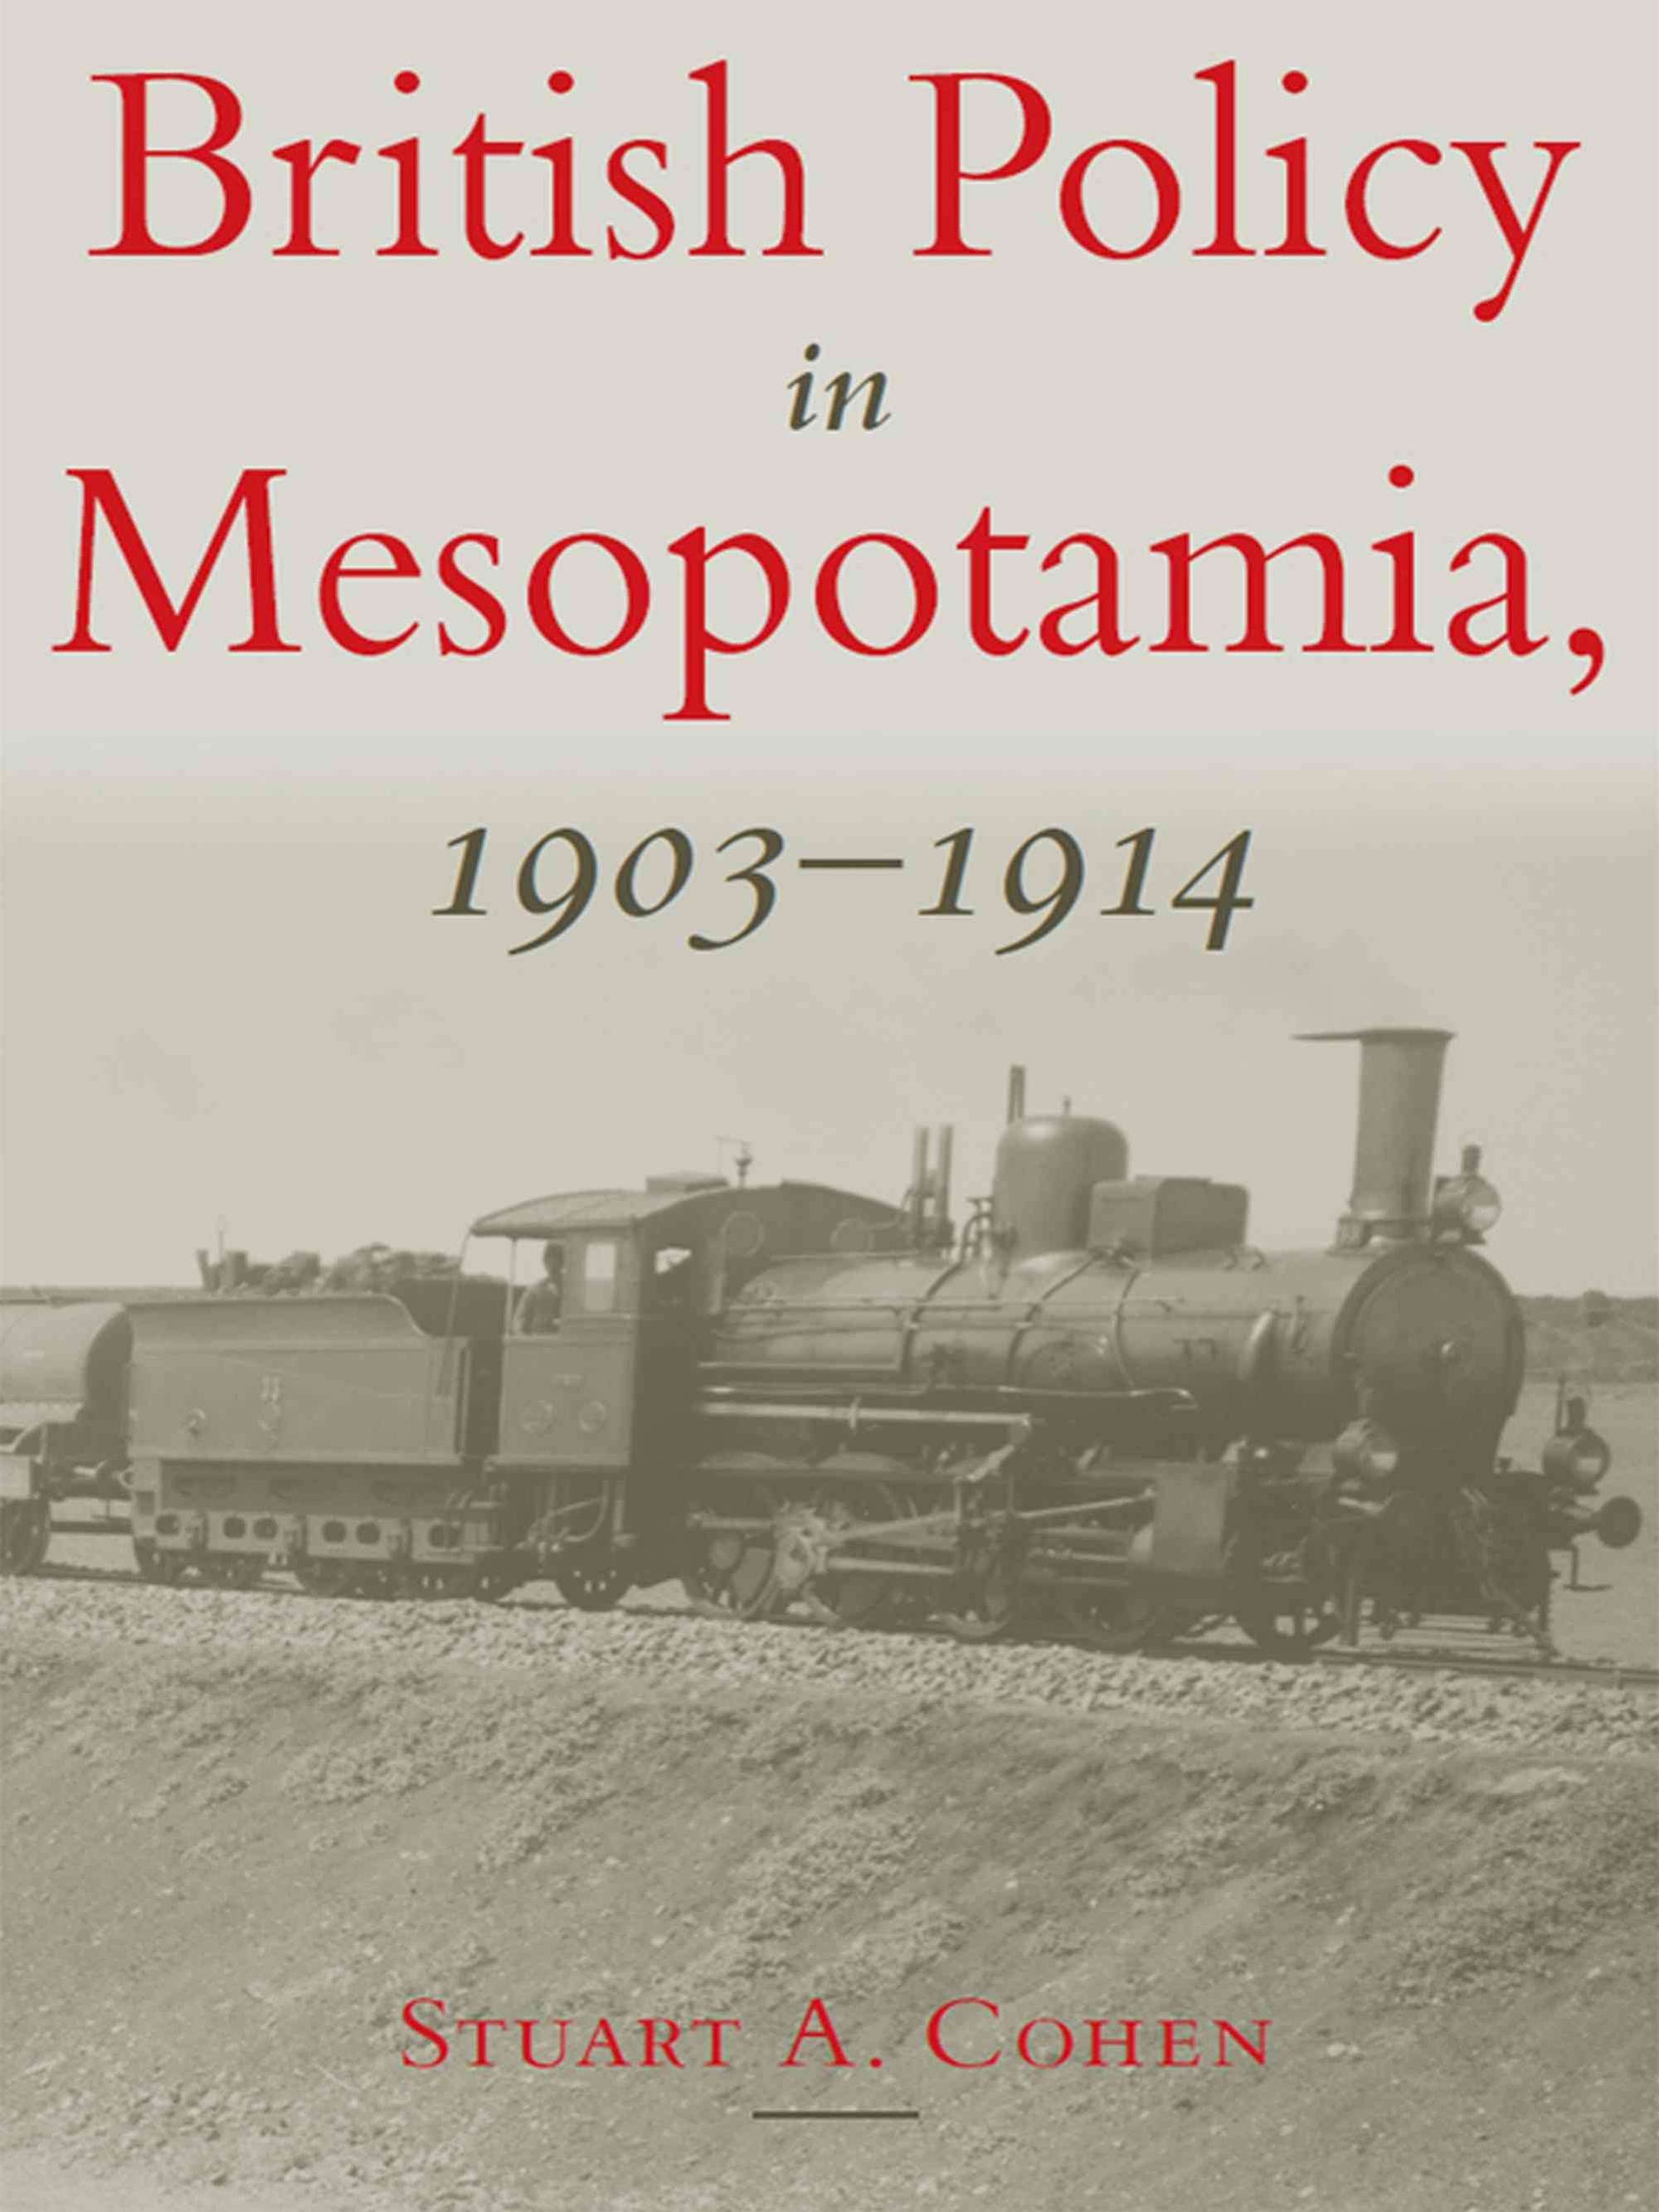 British Policy in Mesopotamia, 1903-1914